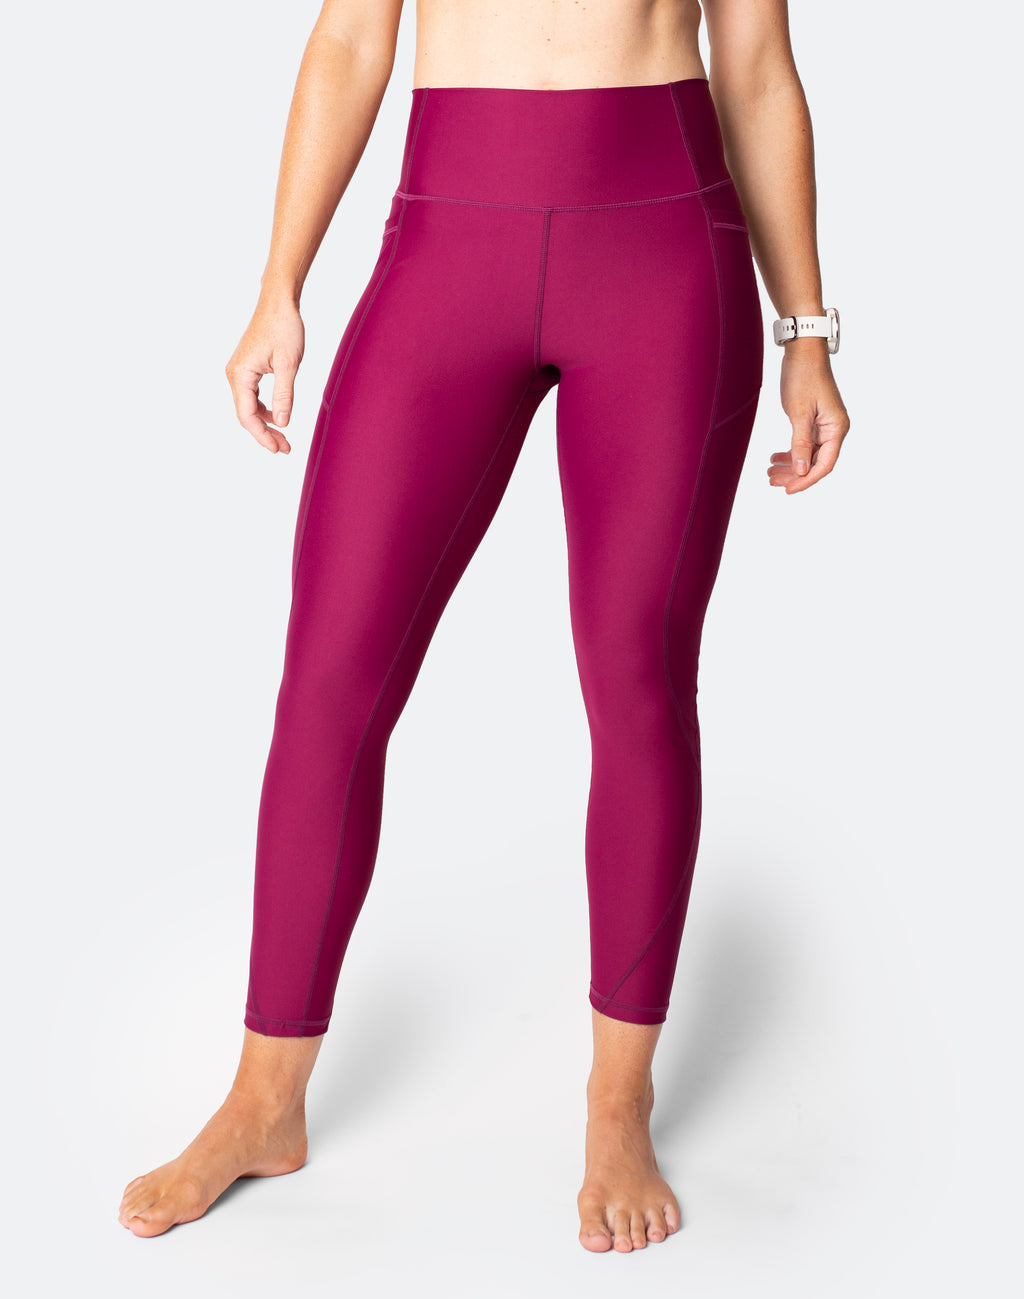 Power FIT - High Waisted Tights 7/8 Plum *PRE ORDER*